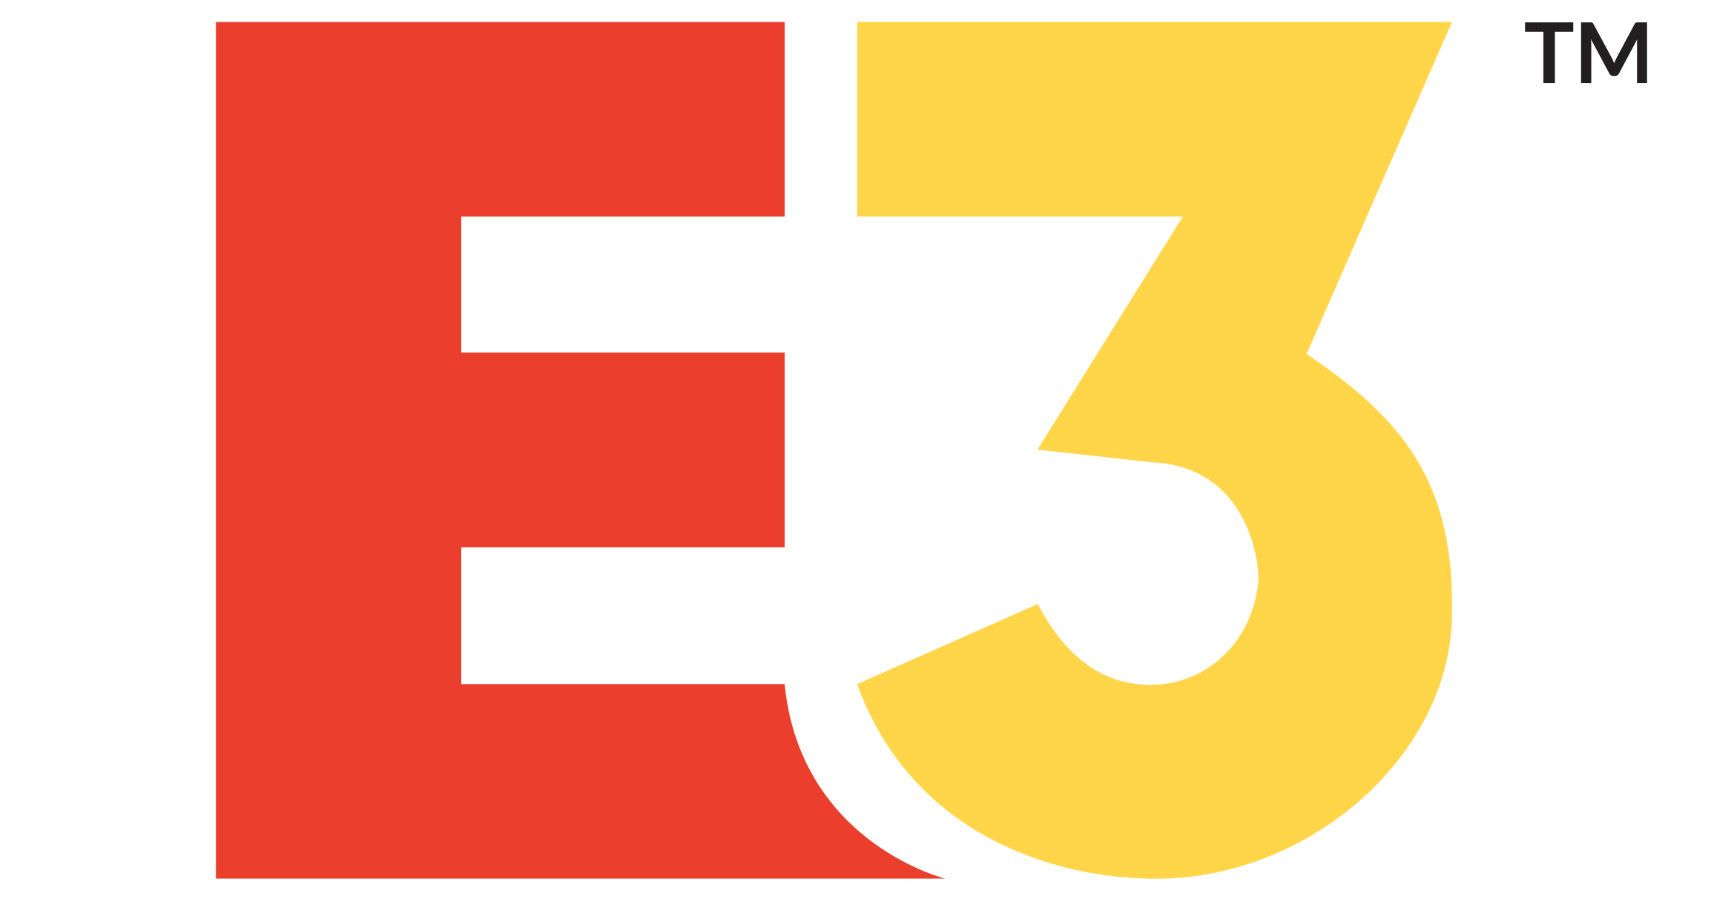 E3 Misgendering Women Shows The Games Industry Still Doesn't Value Us